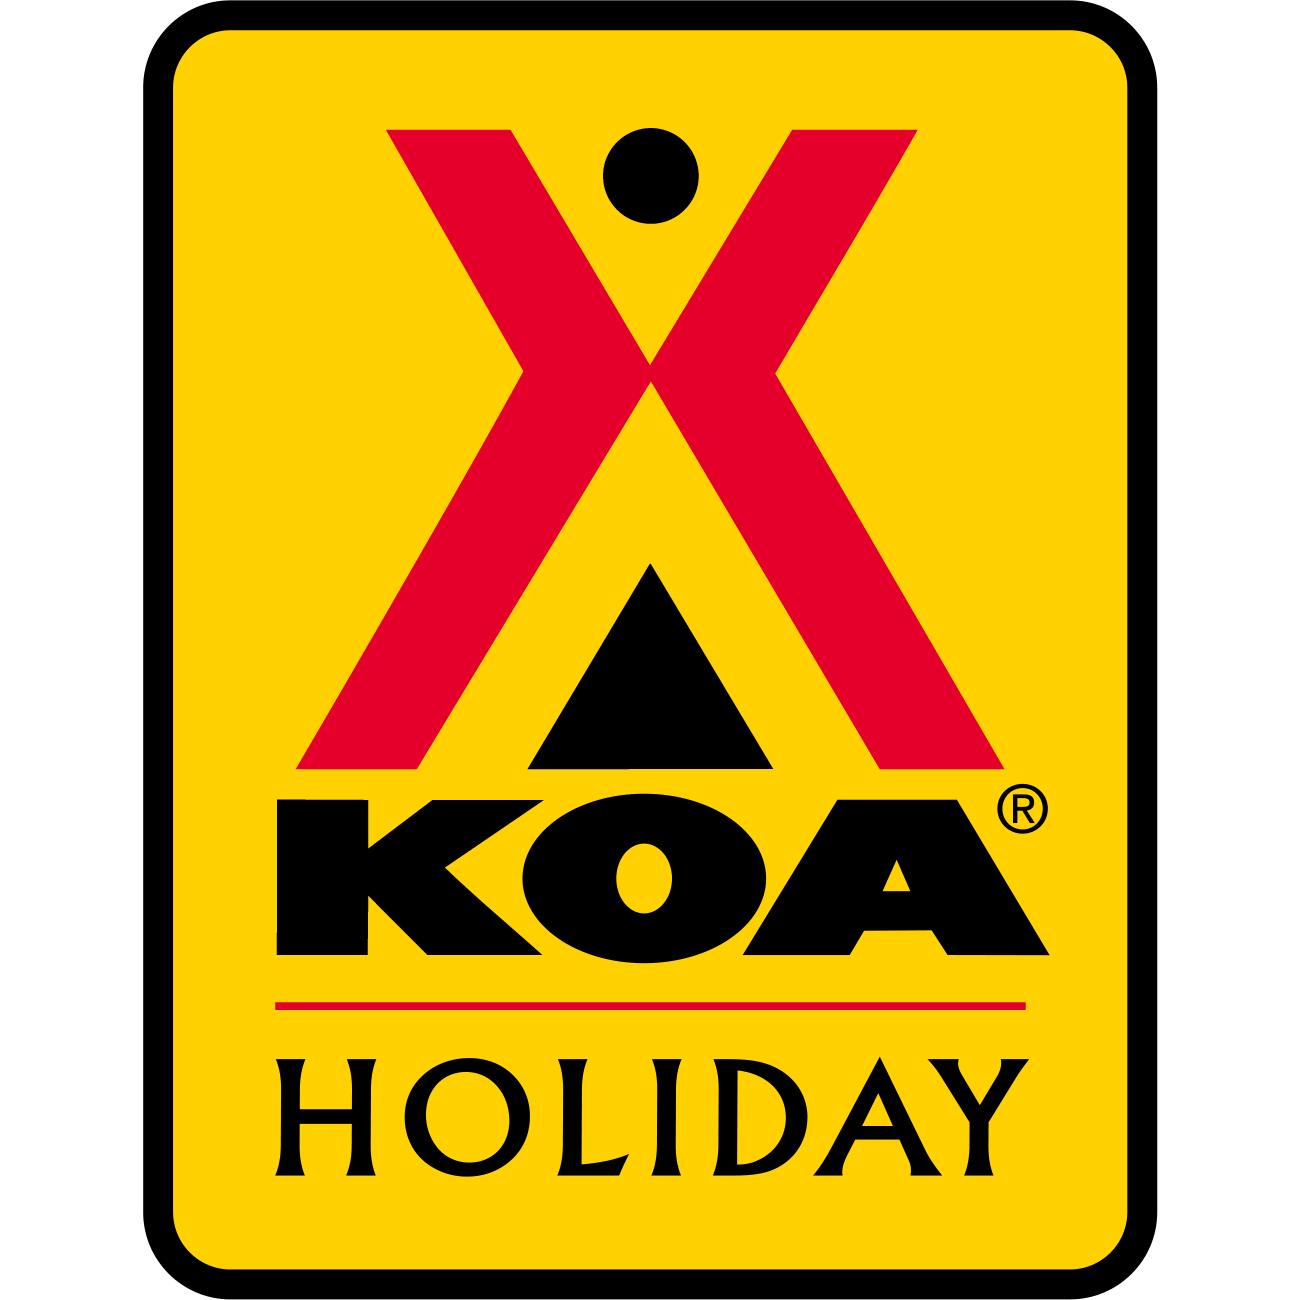 Wisconsin Dells KOA Holiday